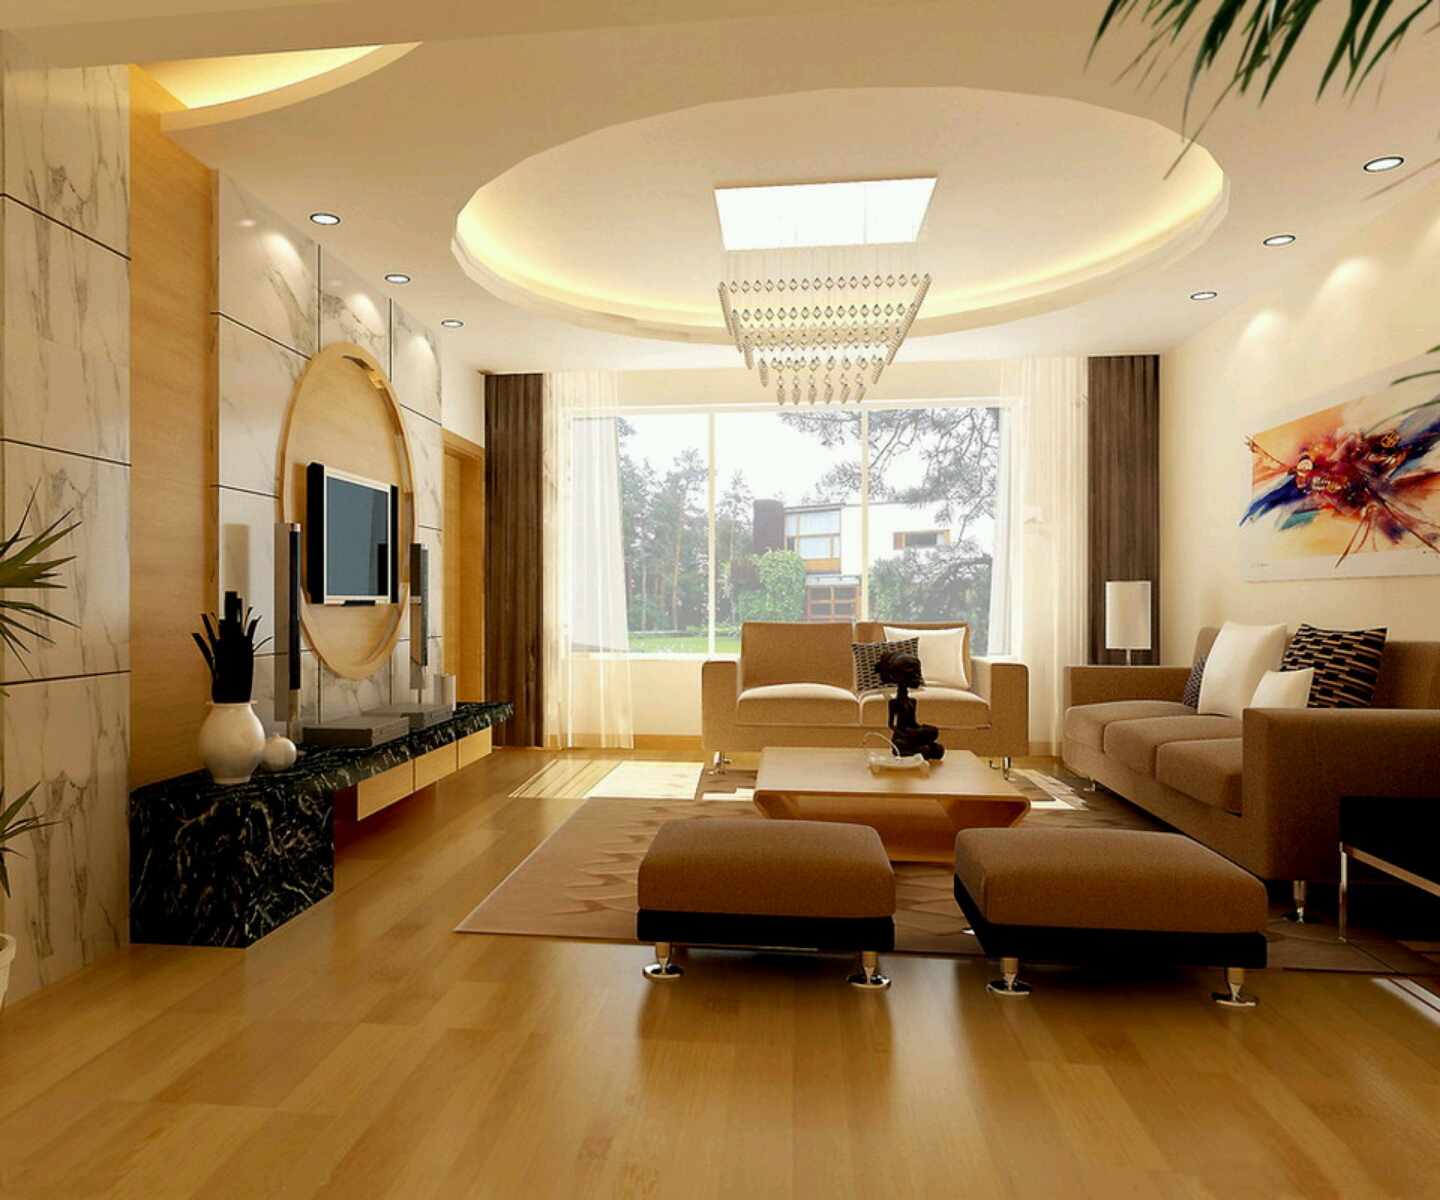 Modern interior decoration living rooms ceiling designs for Internal design living room